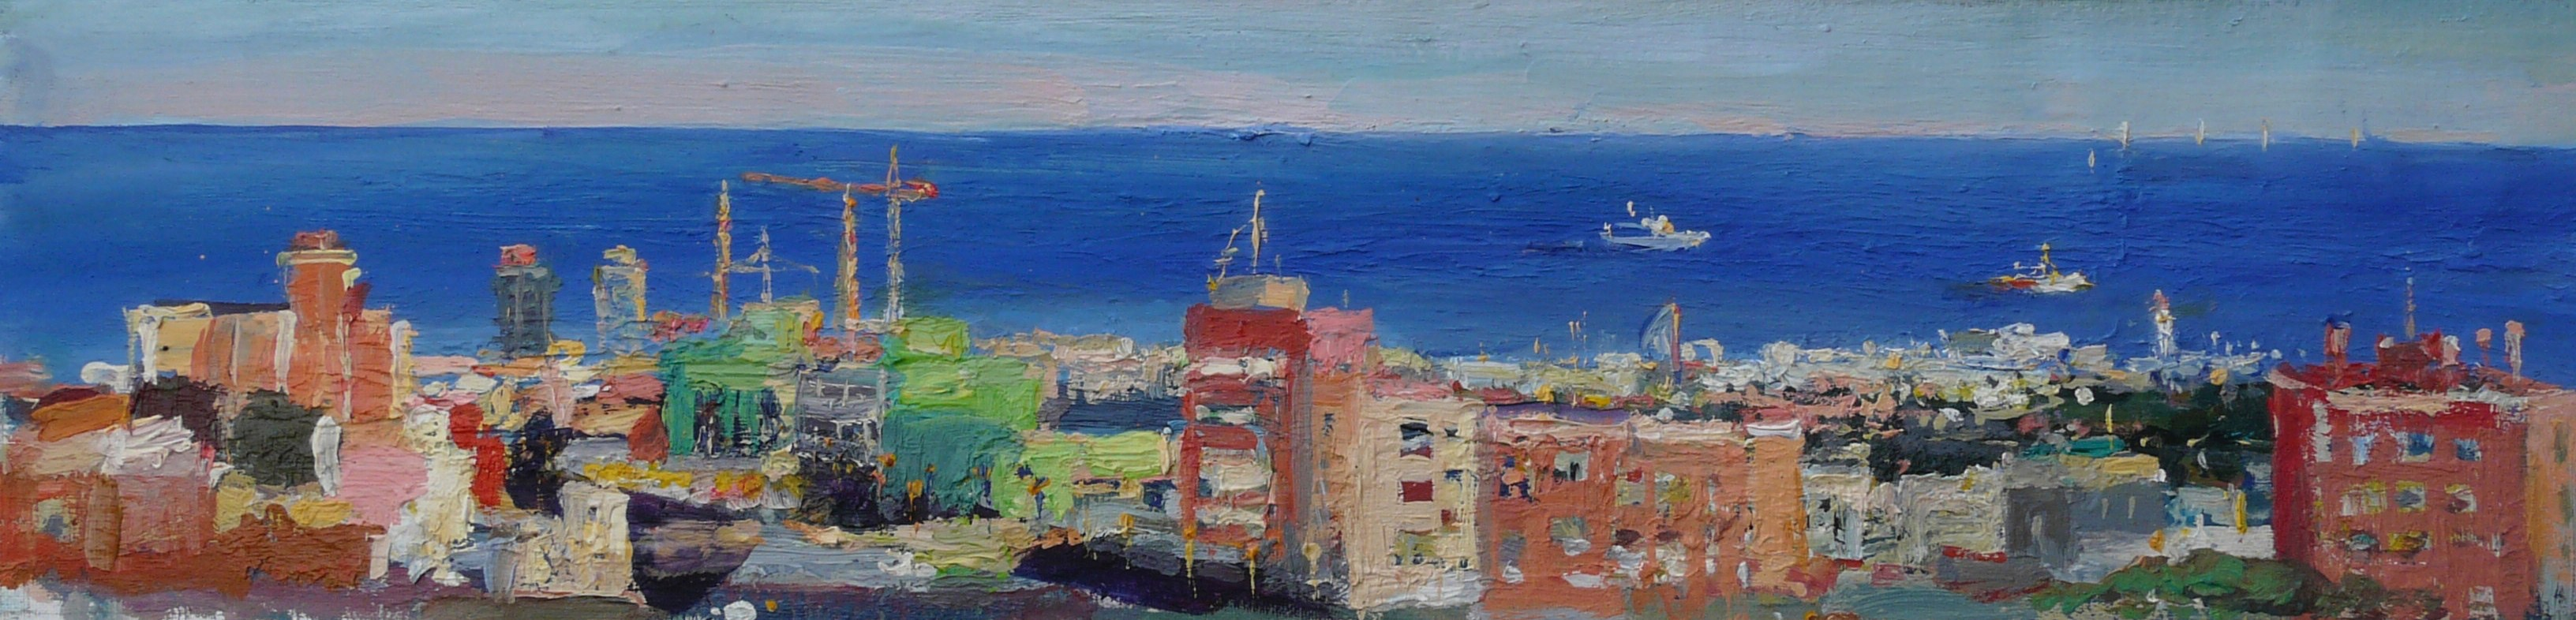 Barcelona from Park Guell 24x6 (1)